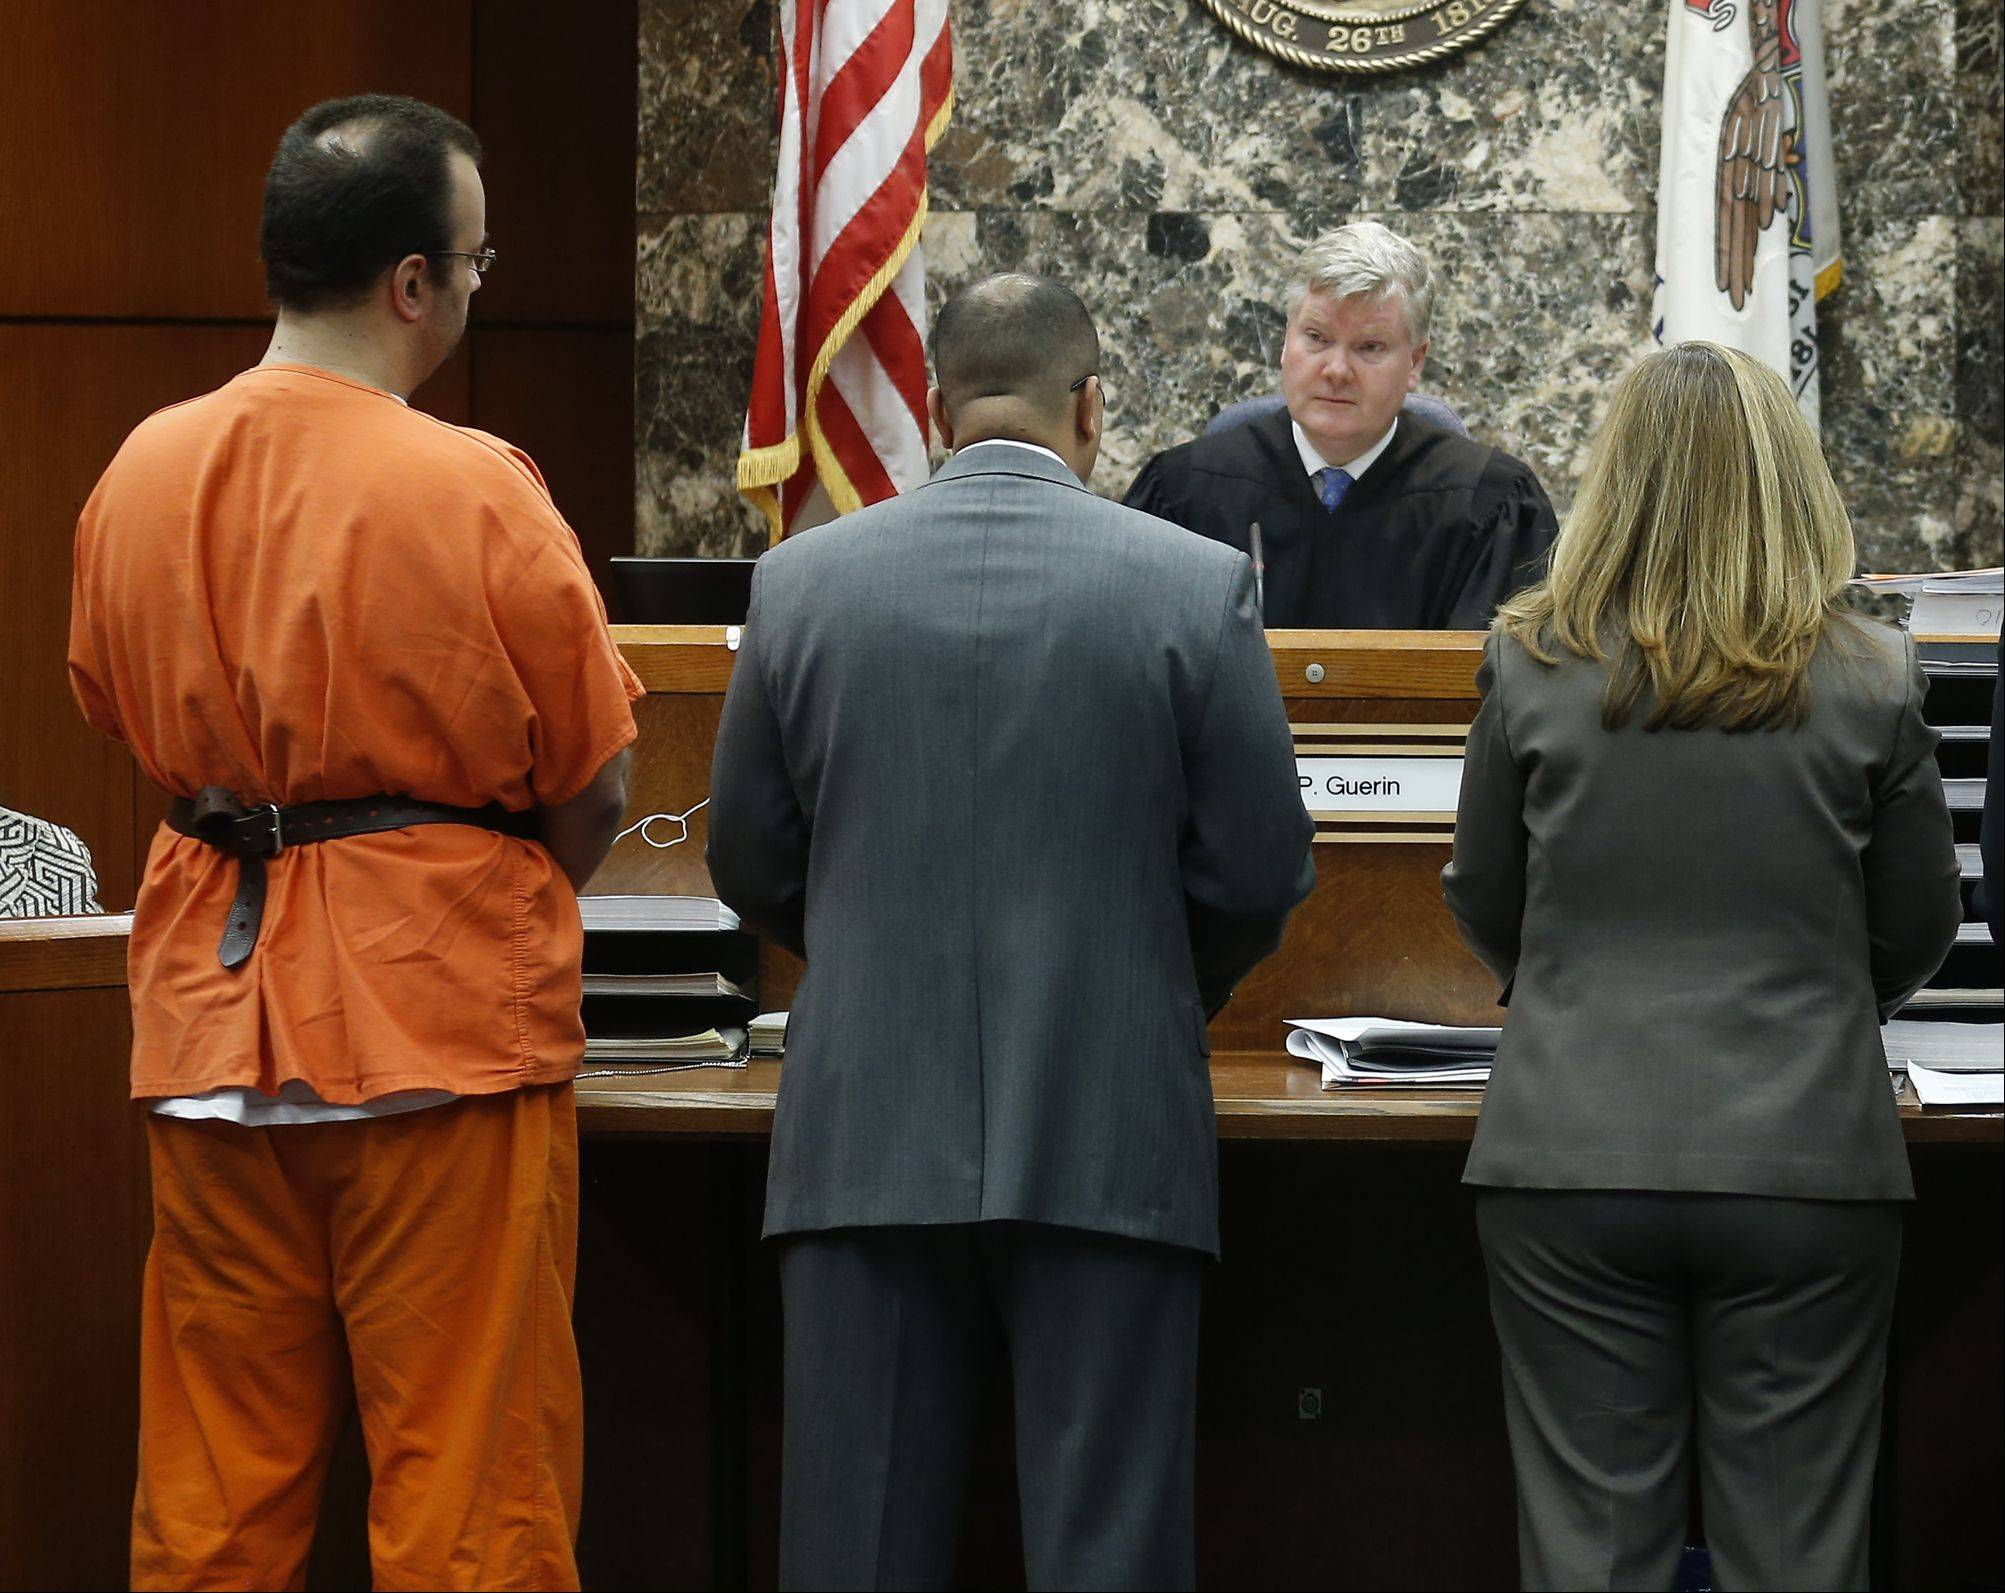 Joseph Spitalli, left, defense attorney George A. Ford, Assistant State's Attorney Cathy DeLaMar and Assistant State's Attorney Kirsten King appear before Judge Daniel P. Guerin at the DuPage County Courthouse in Wheaton.